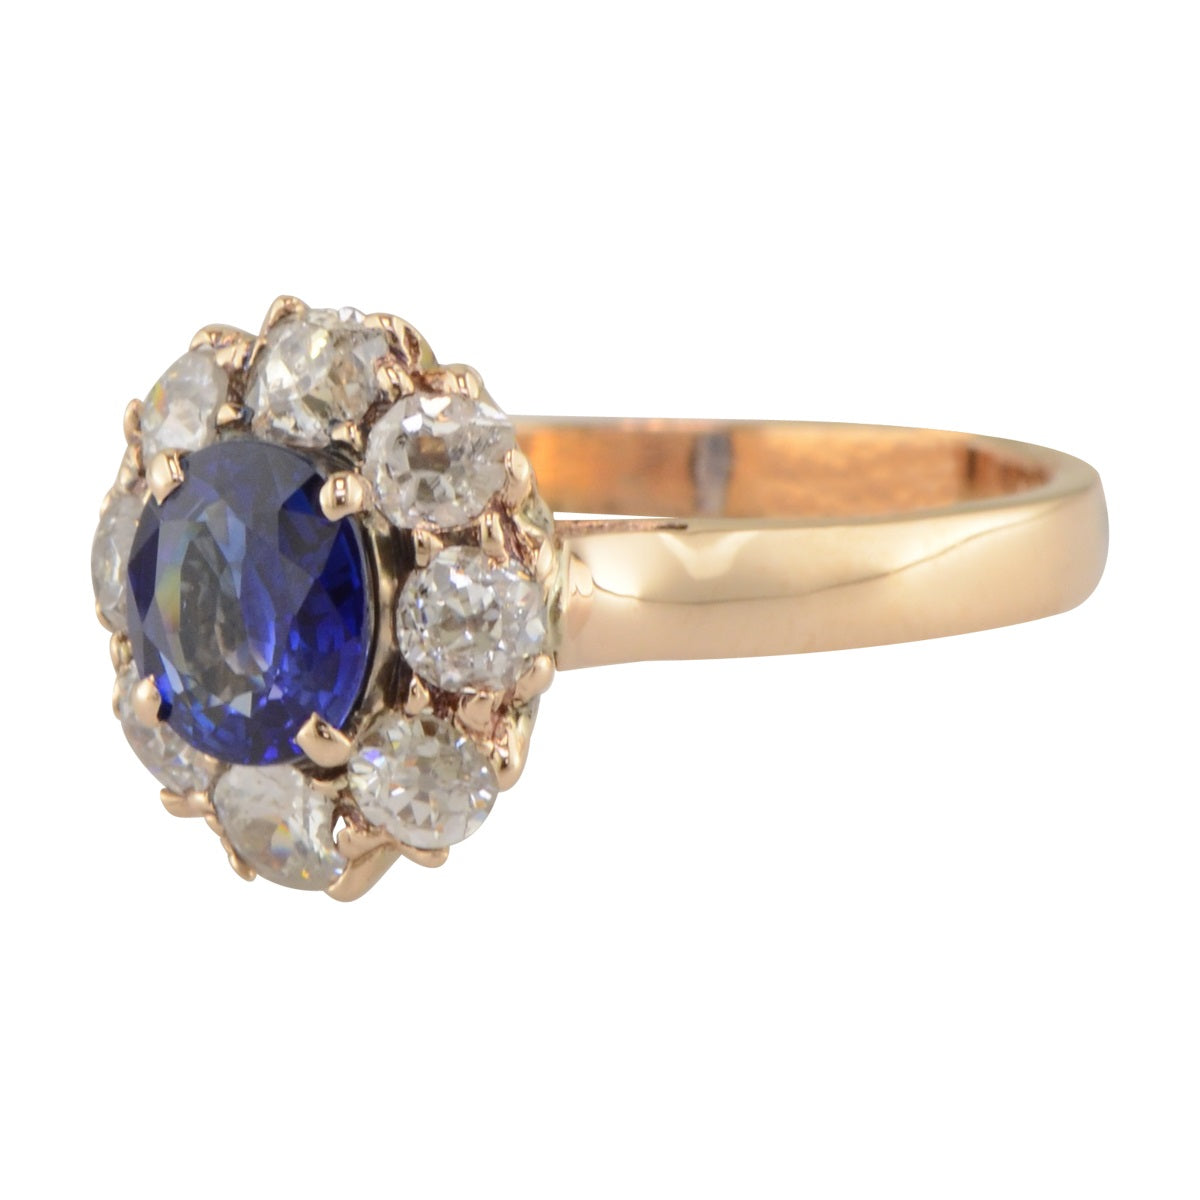 'Dianna' sapphire and diamond halo engagement ring